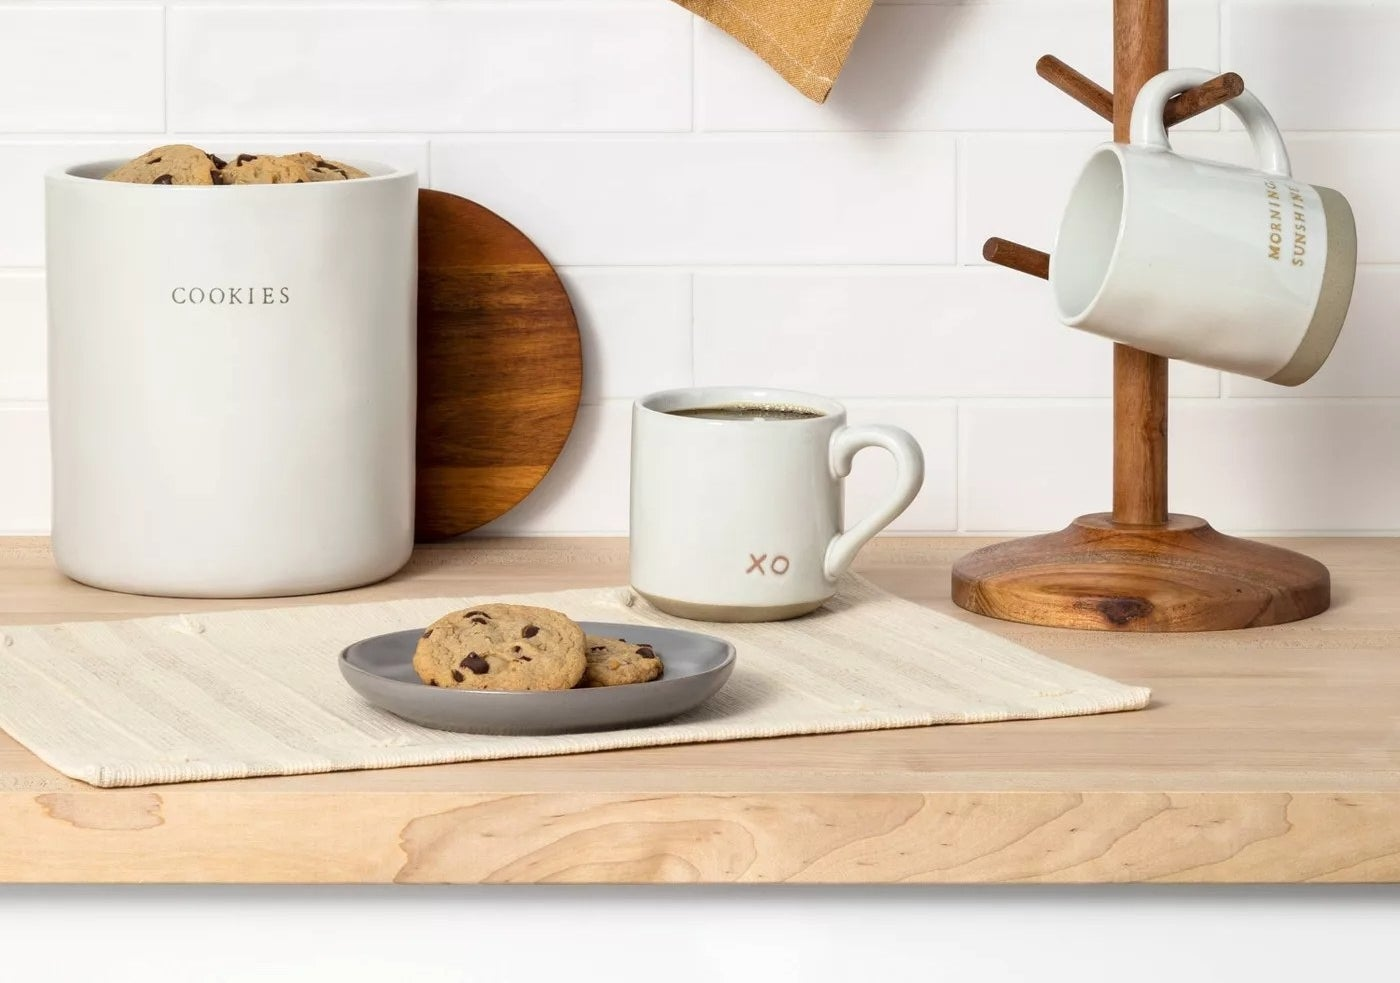 cookie jar next to mug and plate on counter